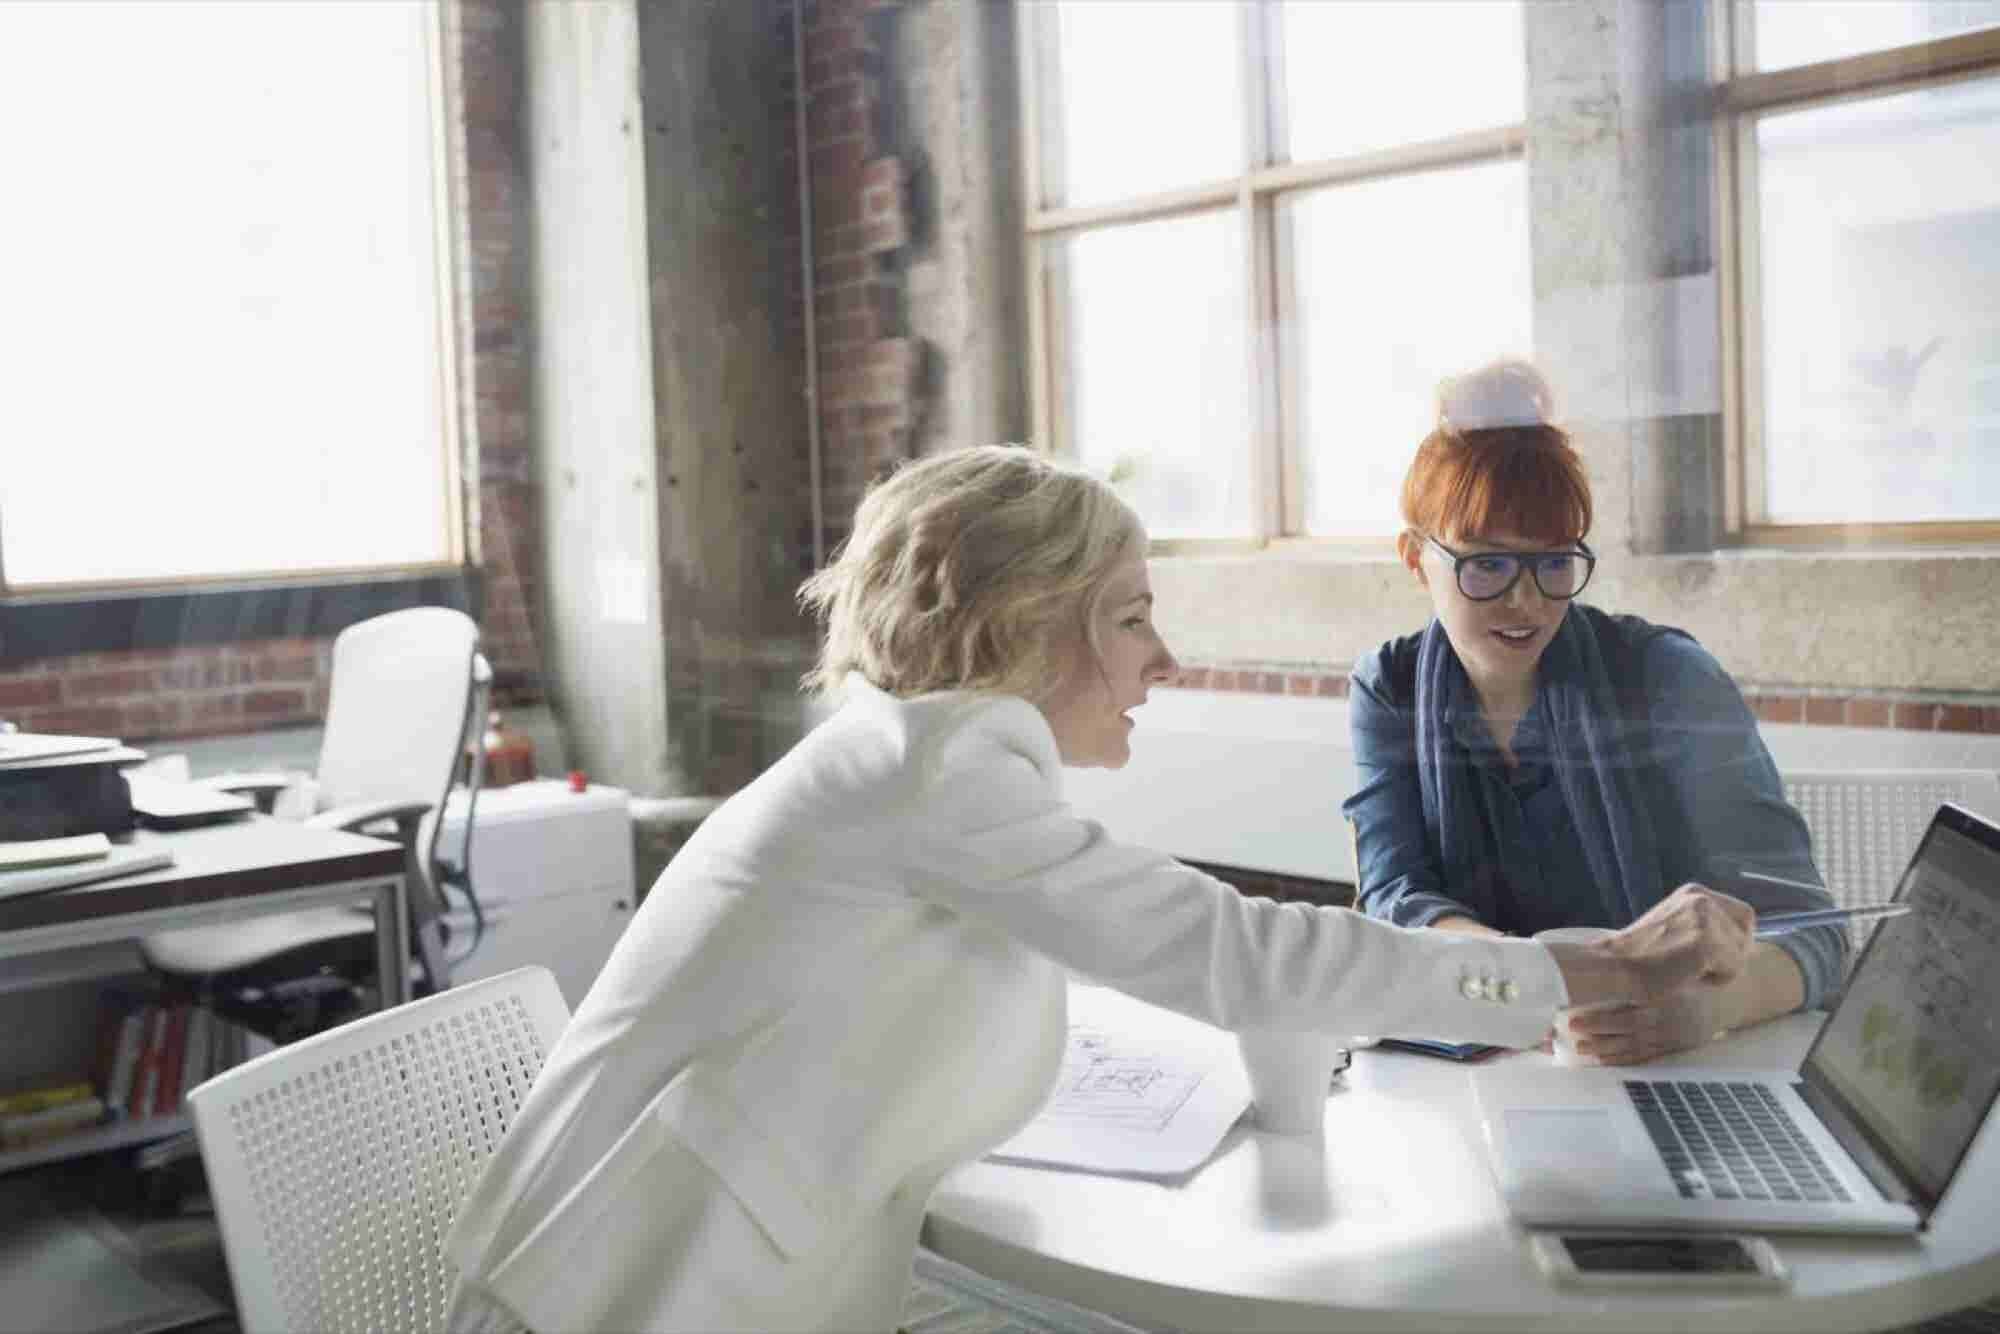 To Rise up the Ranks at Work, Women Can Take These 4 Steps